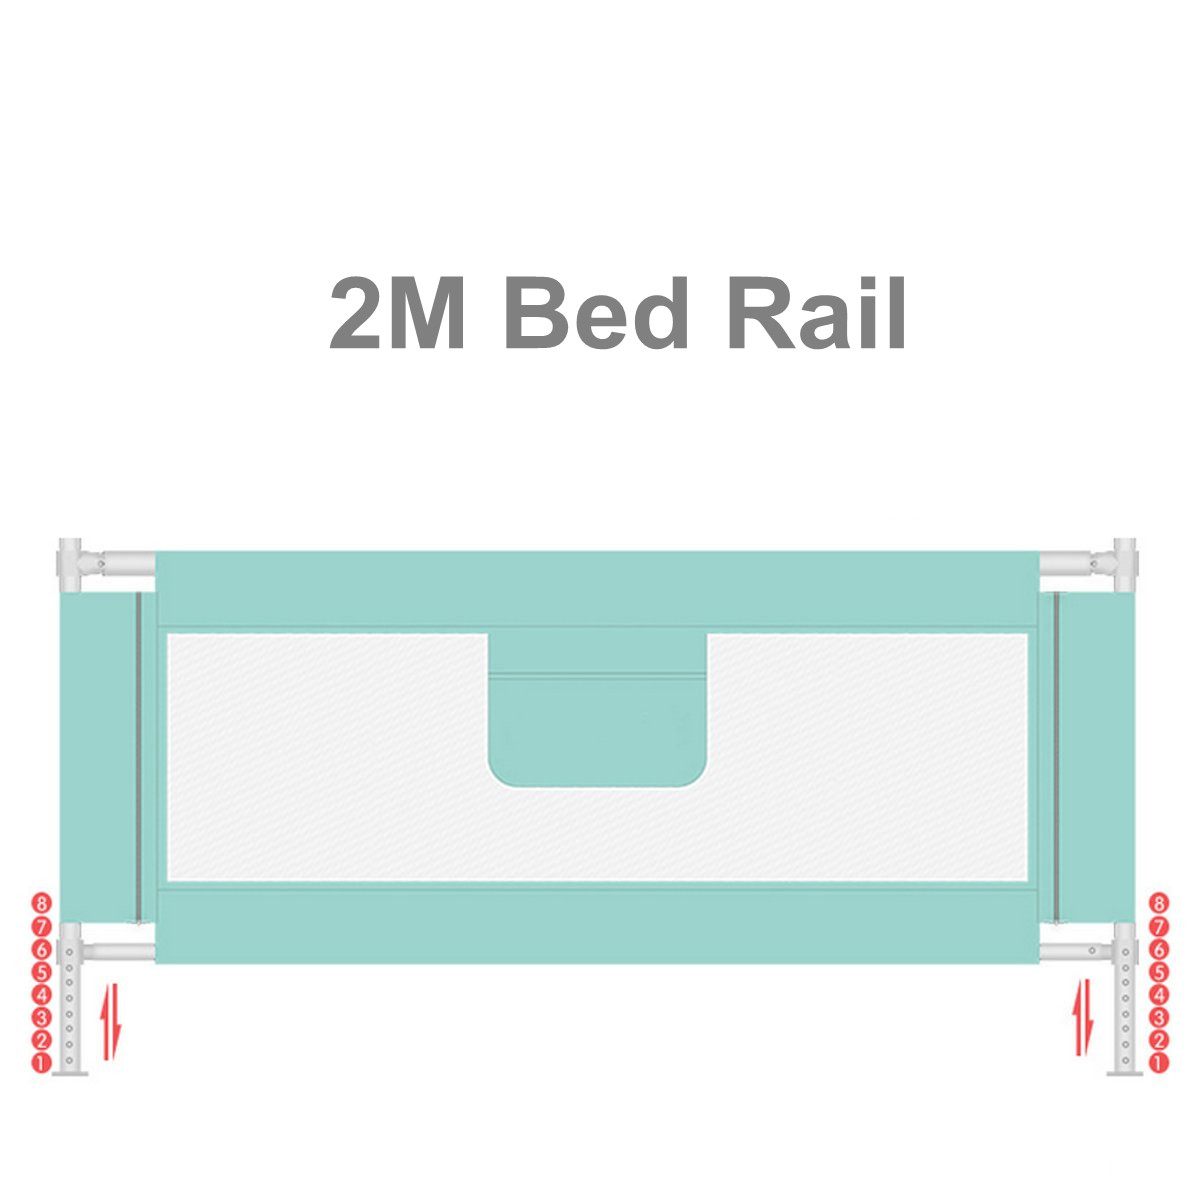 2M Baby Bed Fence for Child Safety used as Baby Gate from Falling Accidentally while Sleeping or Playing 1